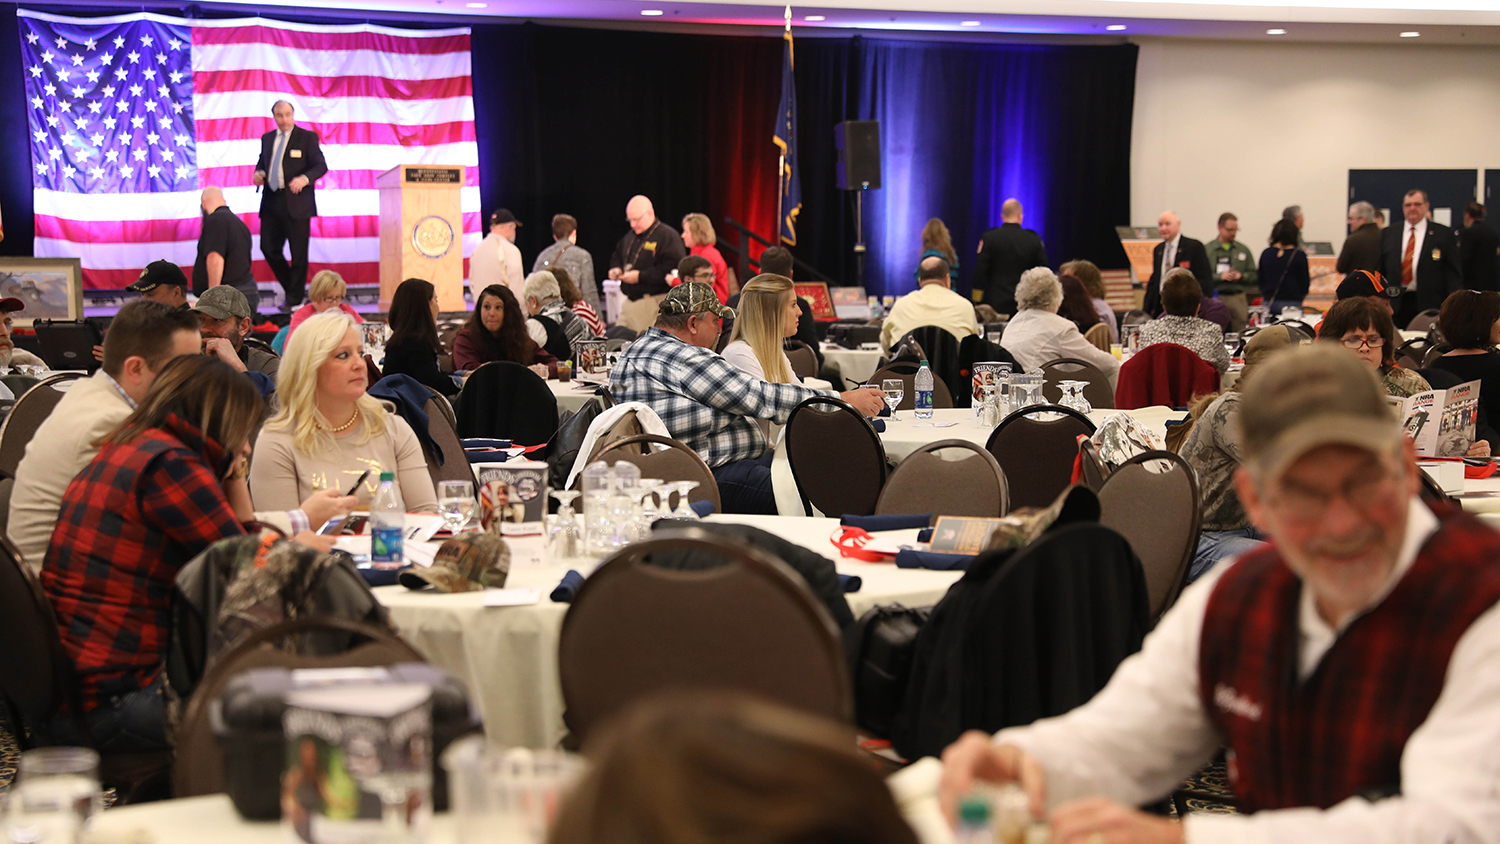 The NRA Foundation Sportsmen's Banquet Continues Tradition of Fundraising Excellence